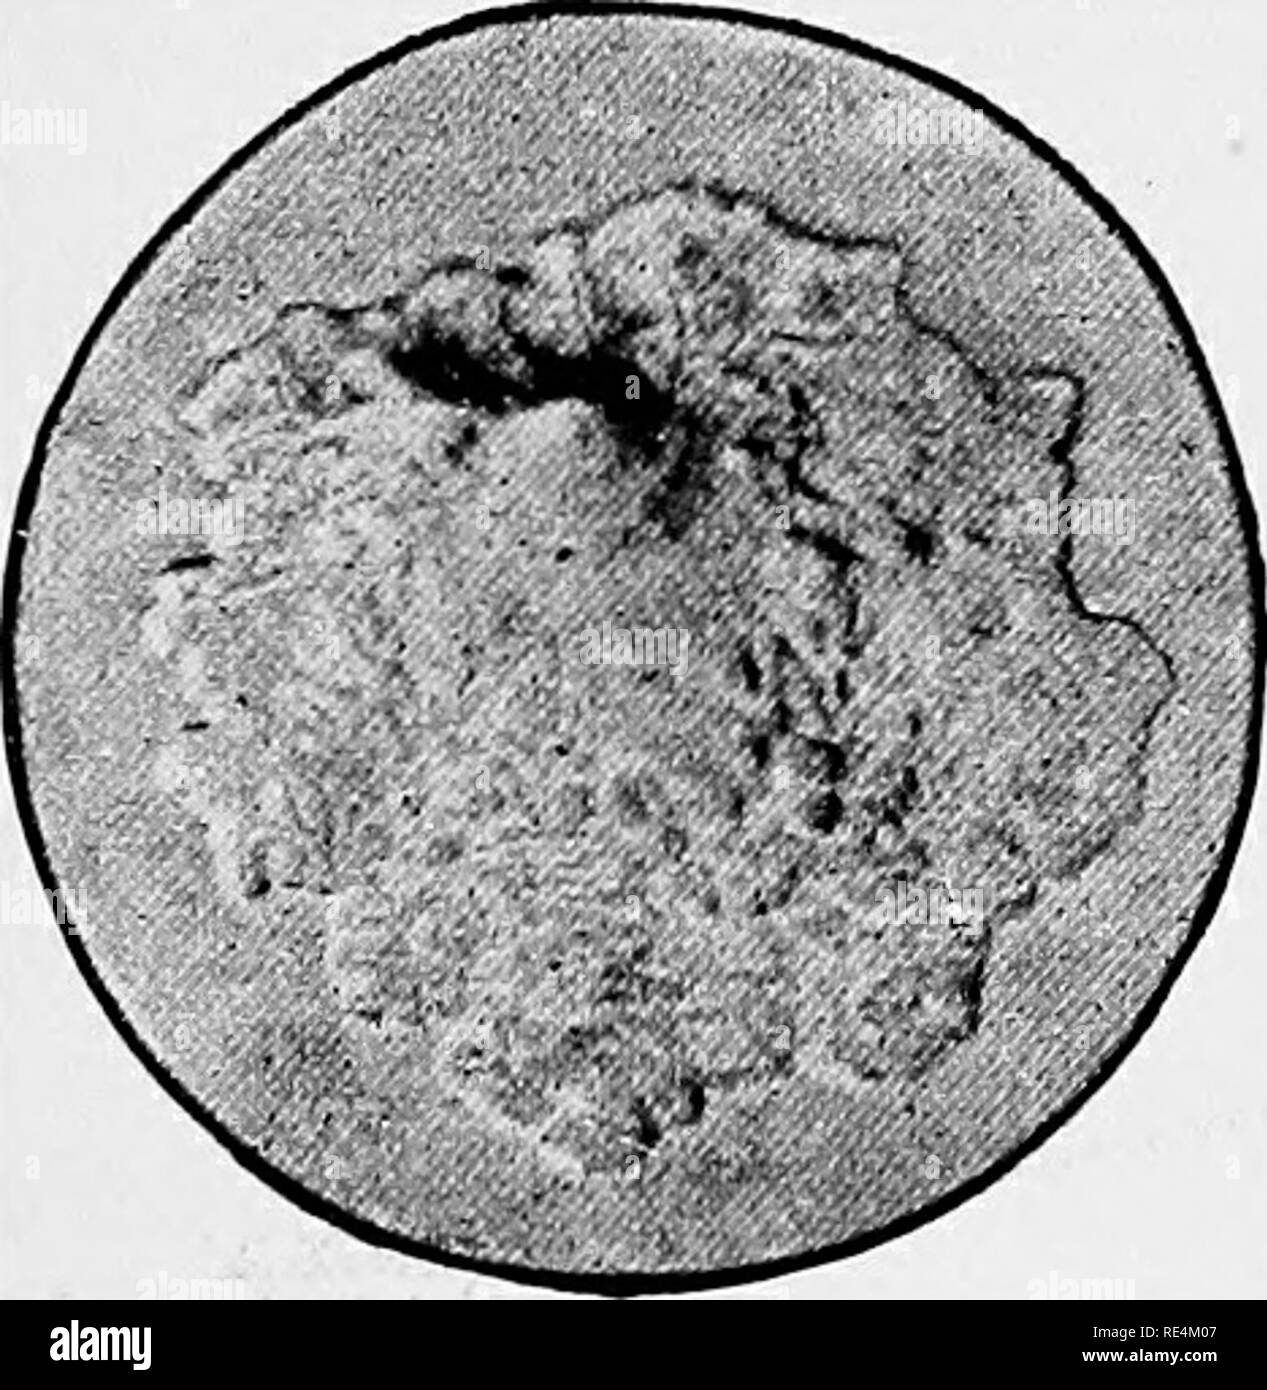 ". A text-book of bacteriology. Bacteriology. Fig. 108.—Bacillus typhi abdominalis. stained by Loffler'a method, showing flagella. X 1,000. From a photomicrograph by Frankel and Pfeiffer. Biological Characters.—The typhoid bacillus is a motile, aero- bic, non-liquefying bacillus, which grows readily in a variety of culture media at the "" room temperature."" Although it grows most abundantly in the presence of free oxygen, it may also develop in its absence, and is consequently a facultative anaerobic. In gelatin plate cultures small, white colonies are developed at the end of thirty-si - Stock Image"